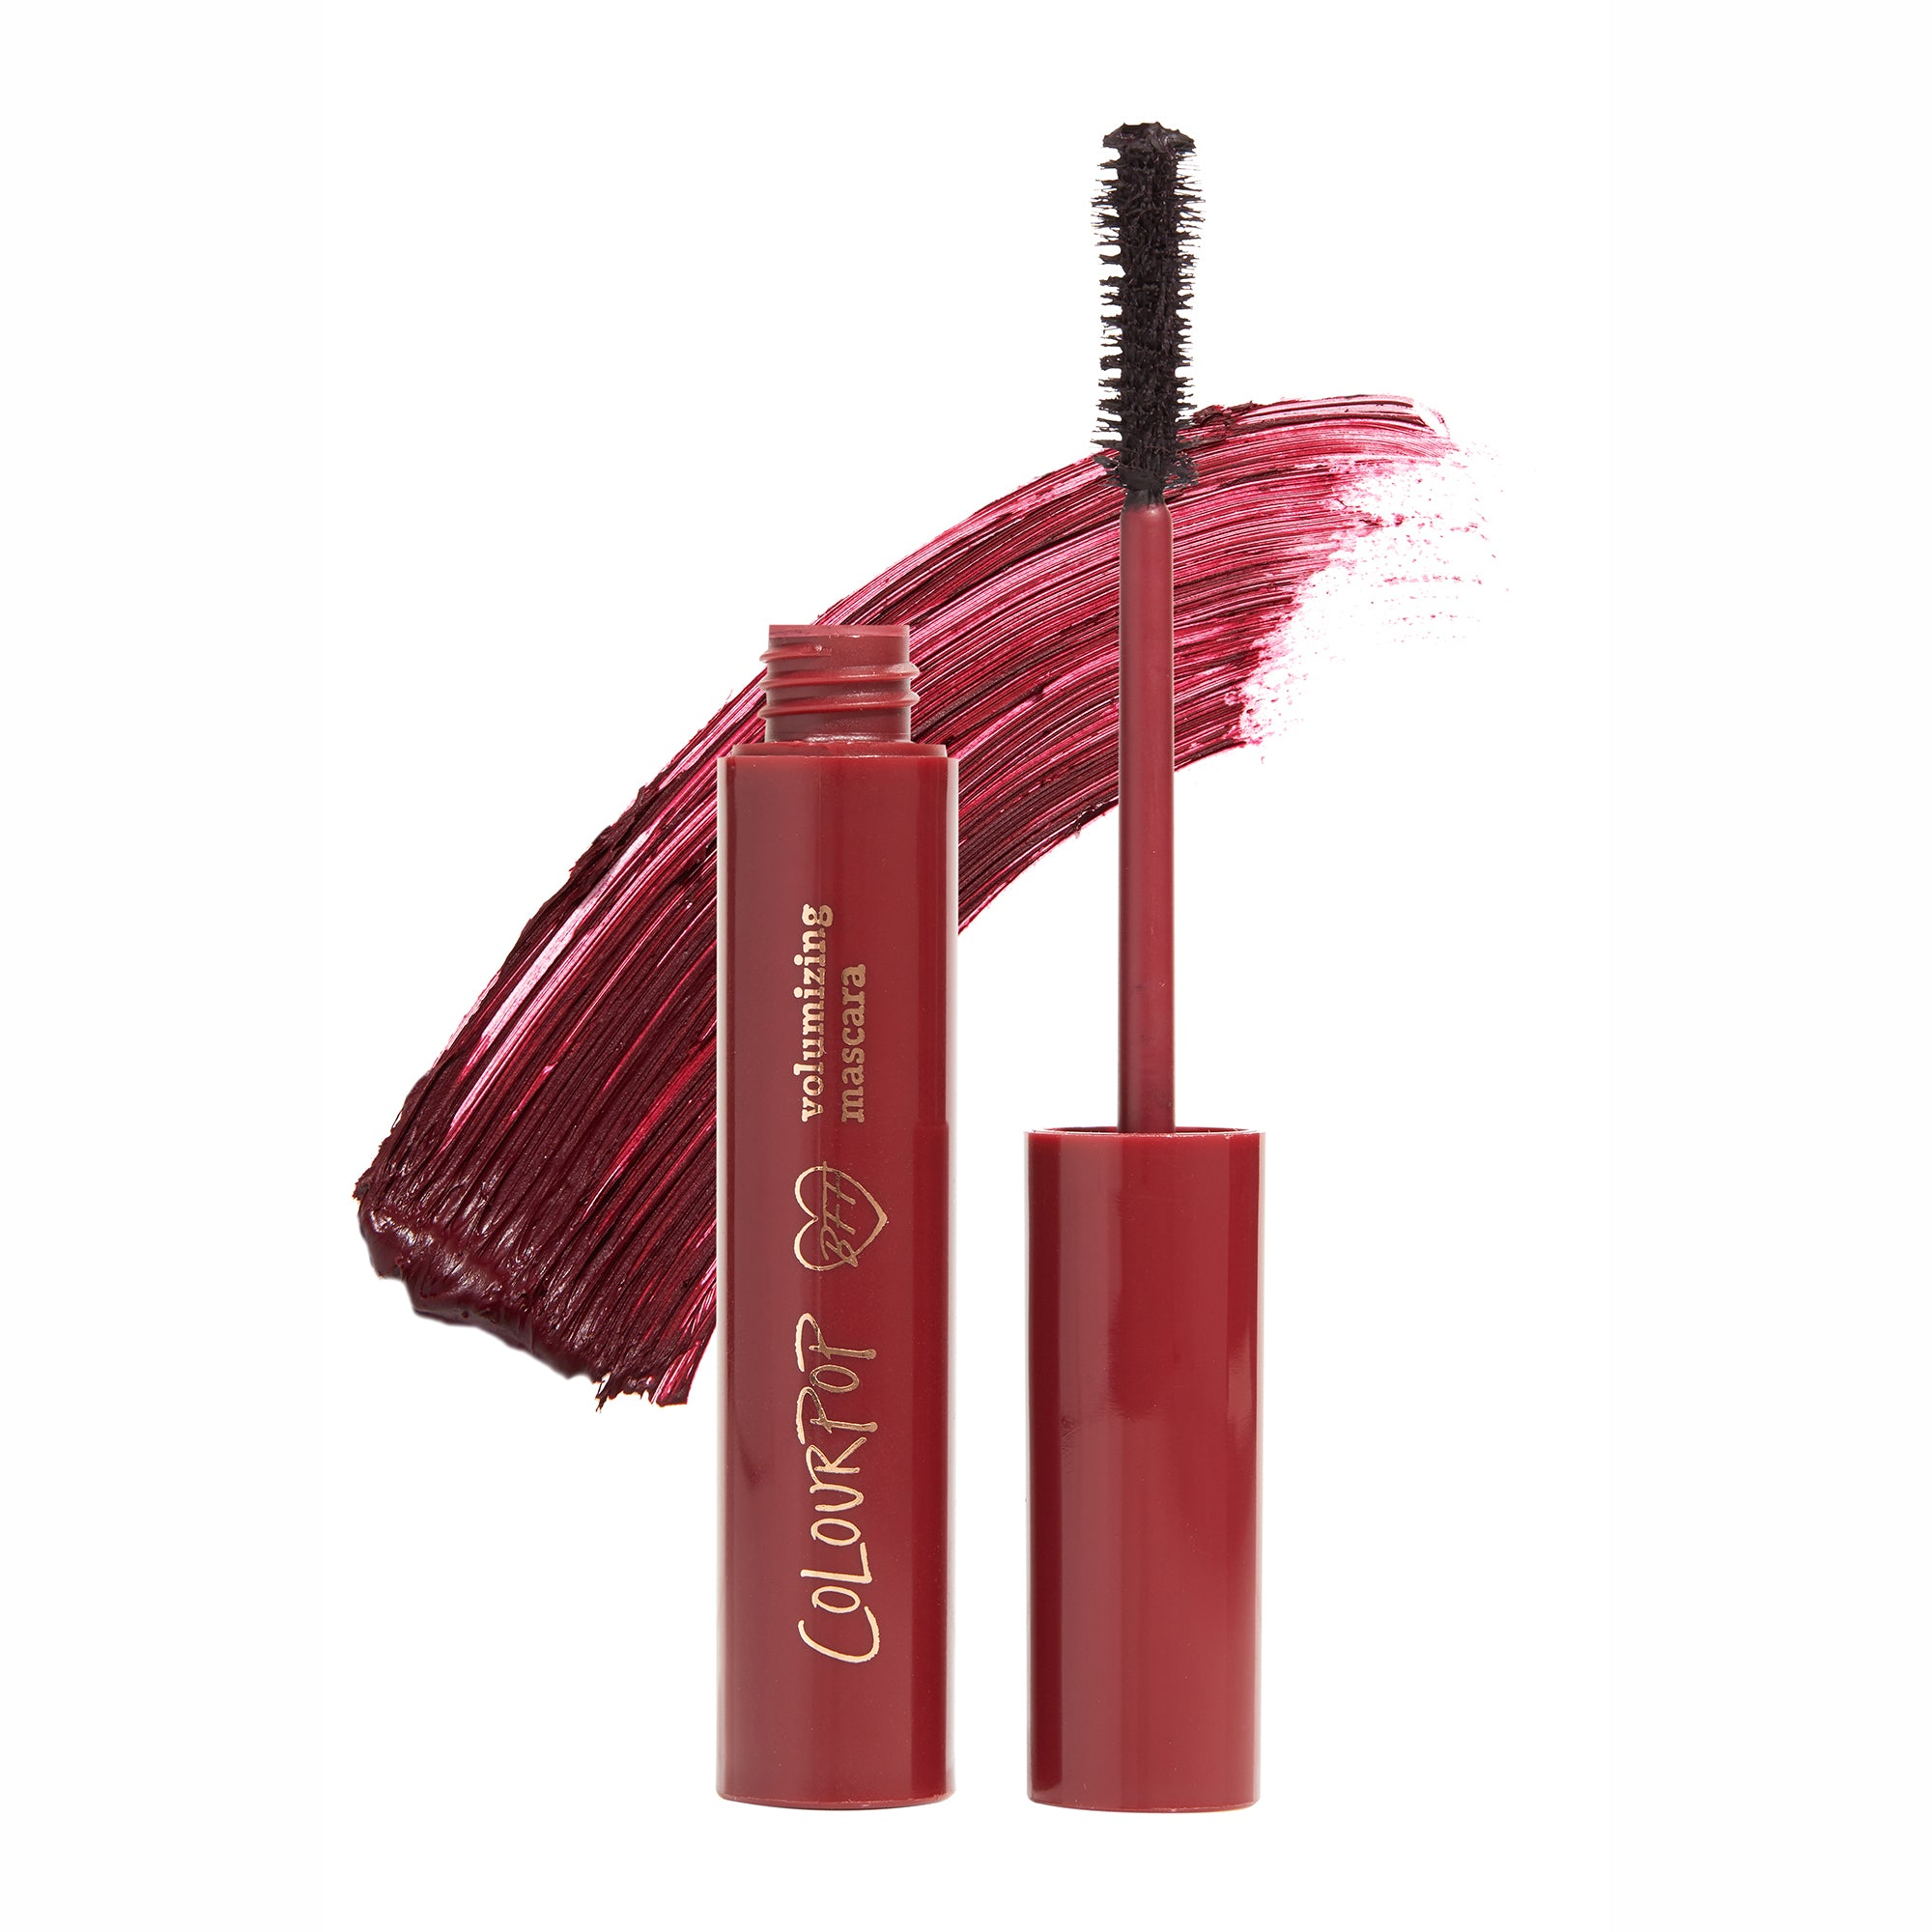 Wine O'Clock a deepened burgundy BFF Mascara